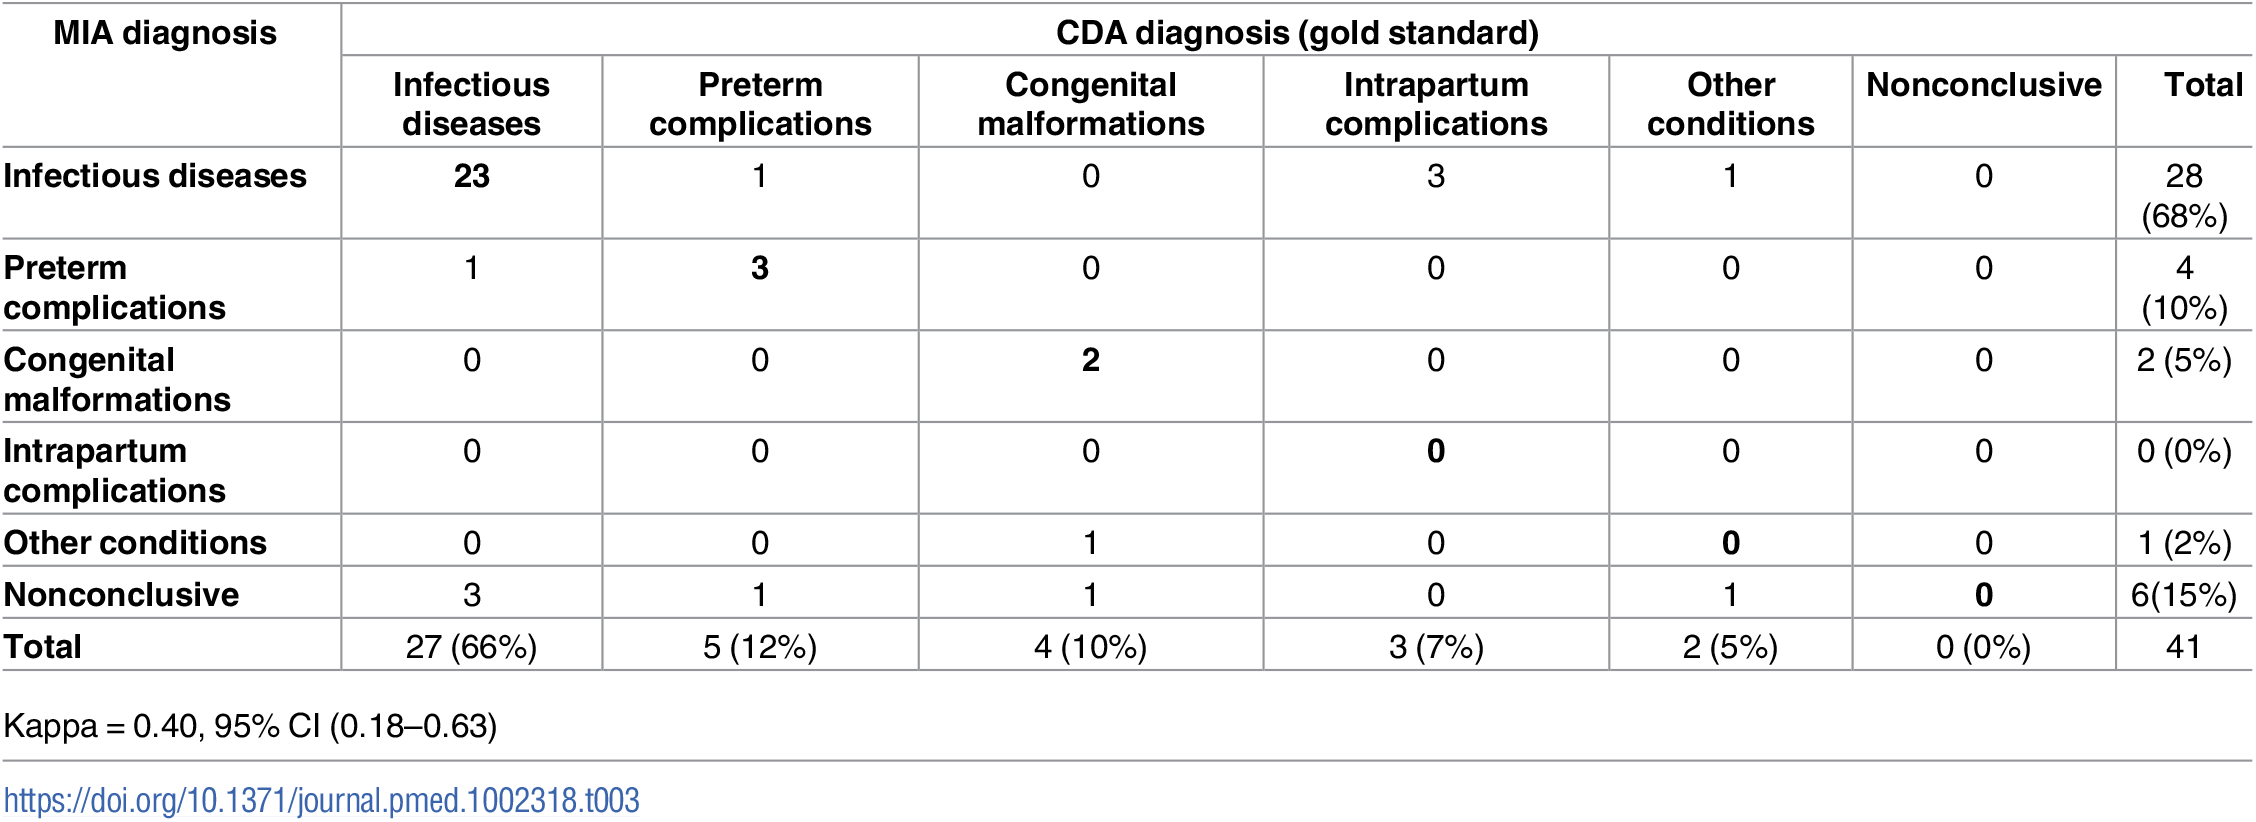 Concordance of the categorization of the cause of death established by the complete diagnostic autopsy (CDA, gold standard) and the minimally invasive (MIA) diagnosis in neonates.